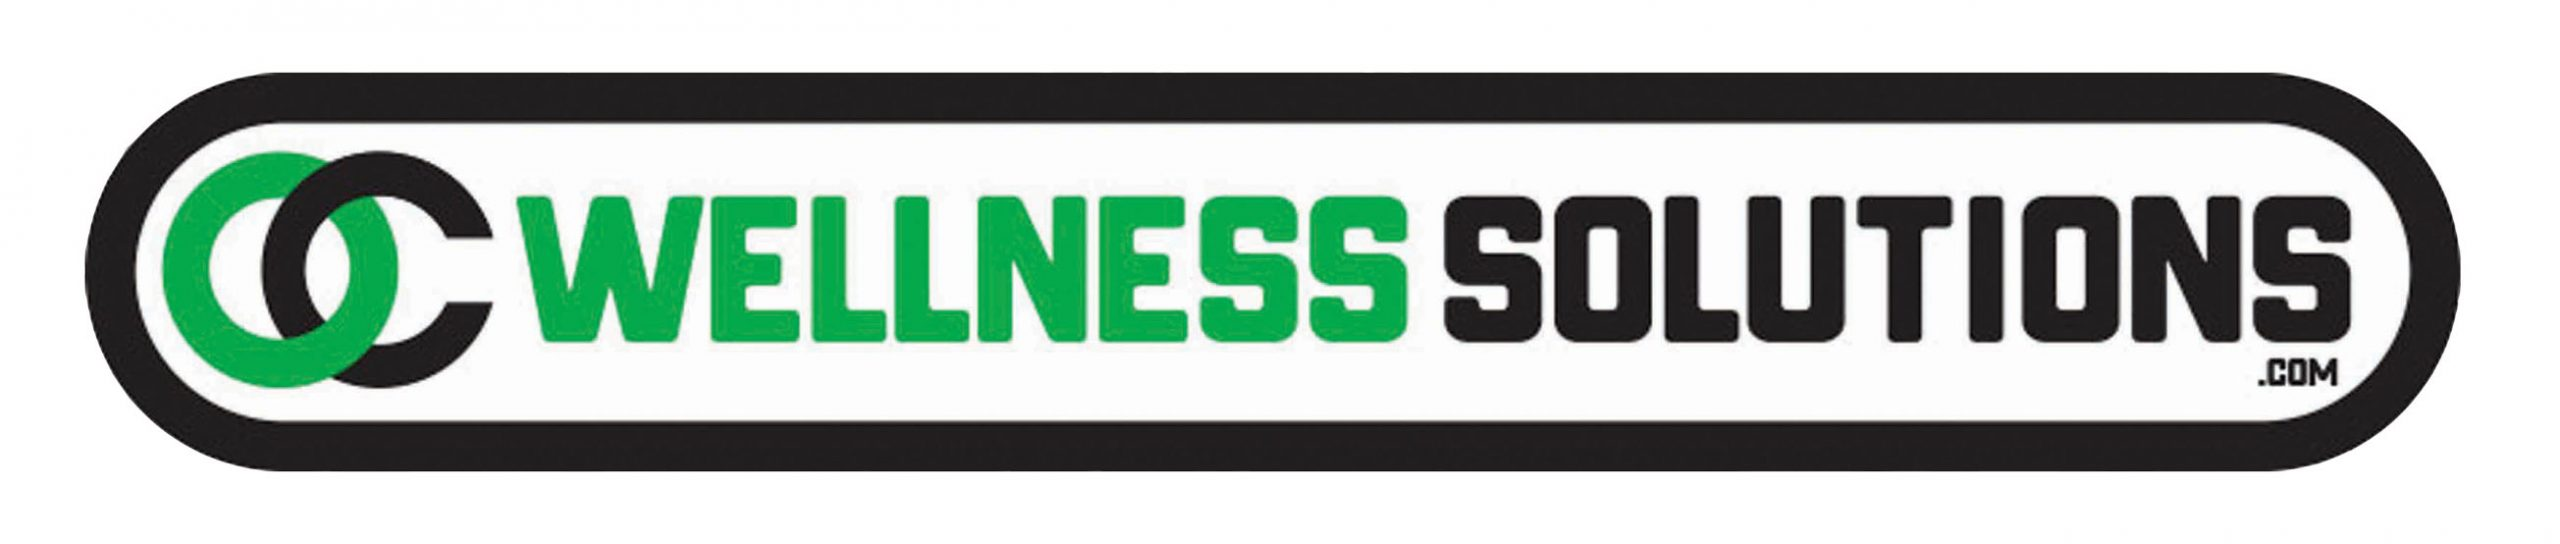 OC Wellness Solutions Leads The Industry in Extra Strength CBD Topical Products 1